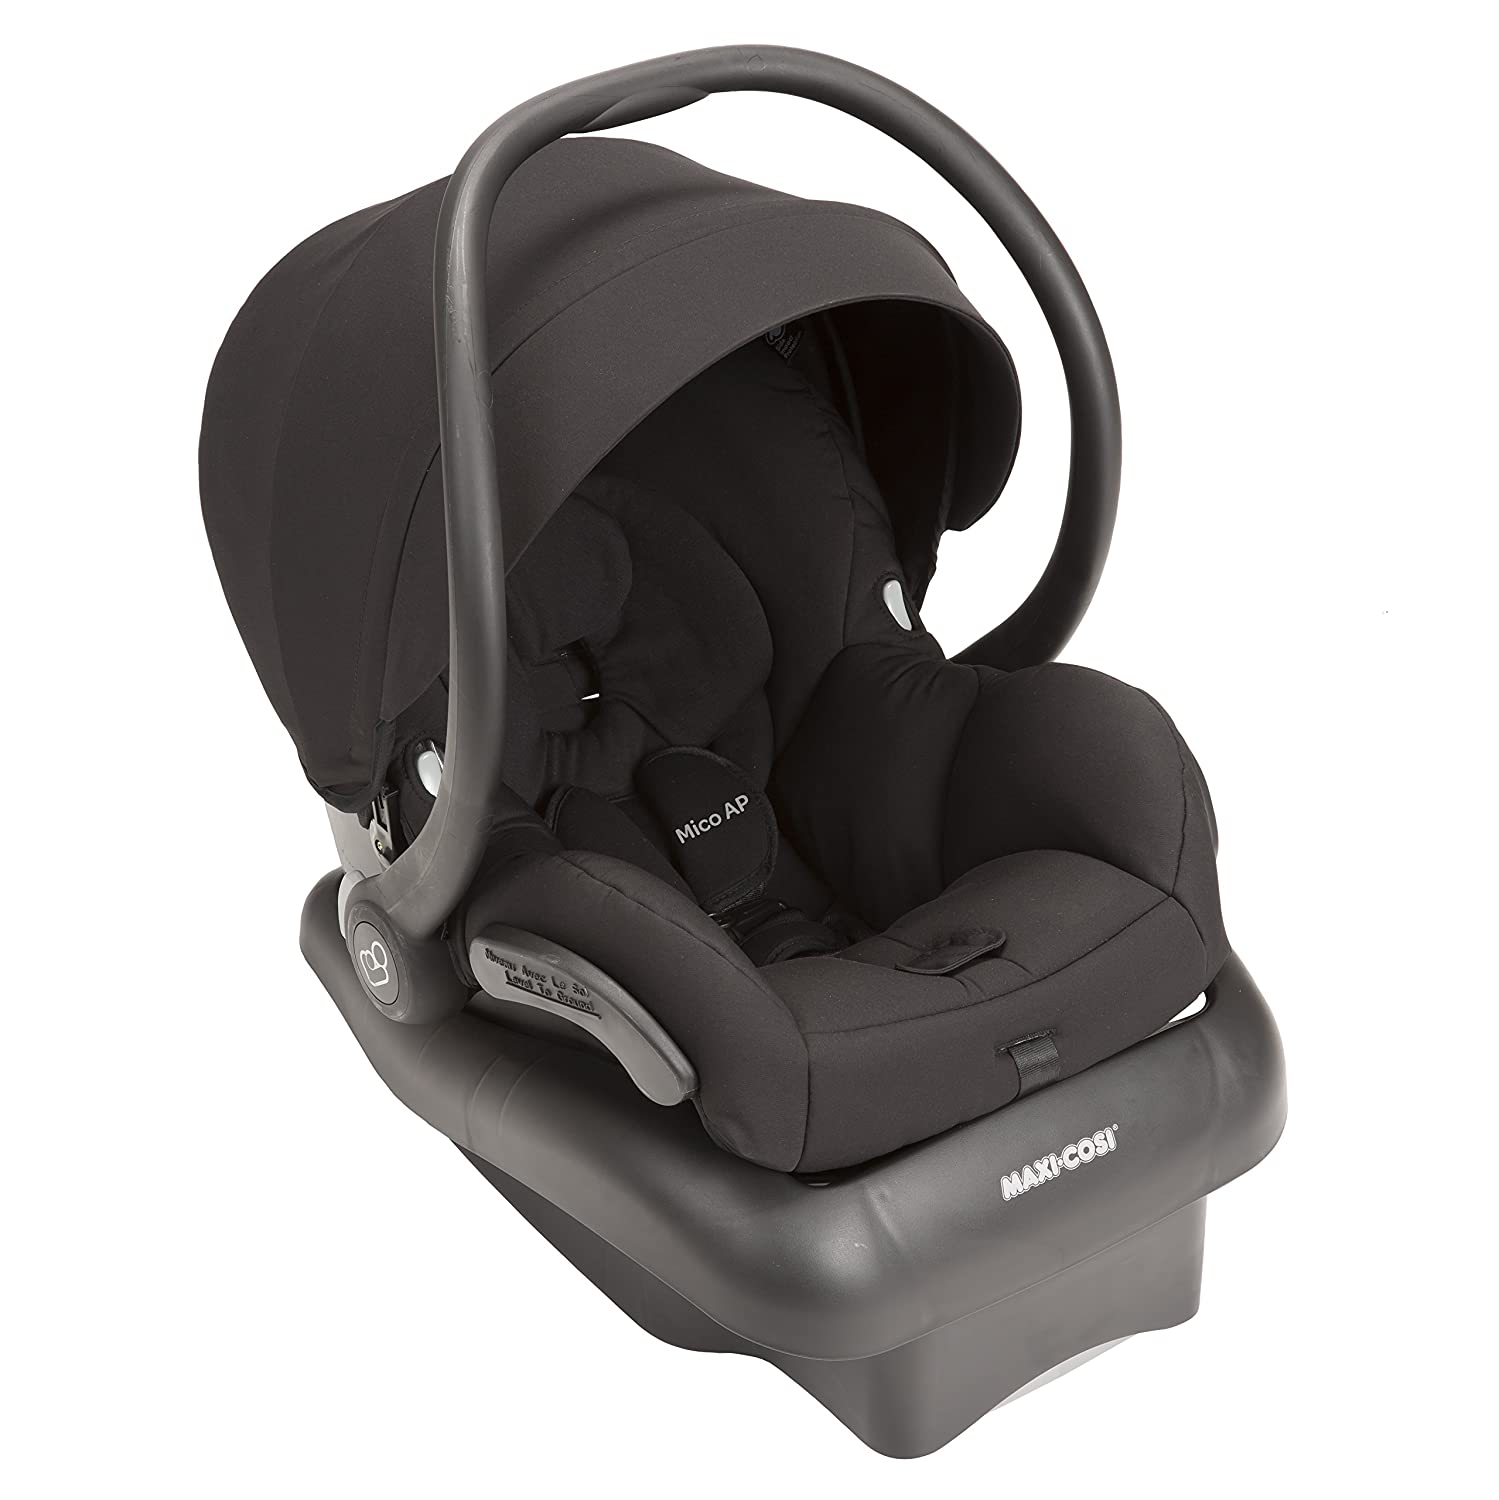 Amazon.com : Maxi-Cosi Mico AP Infant Car Seat, Devoted Black : Baby